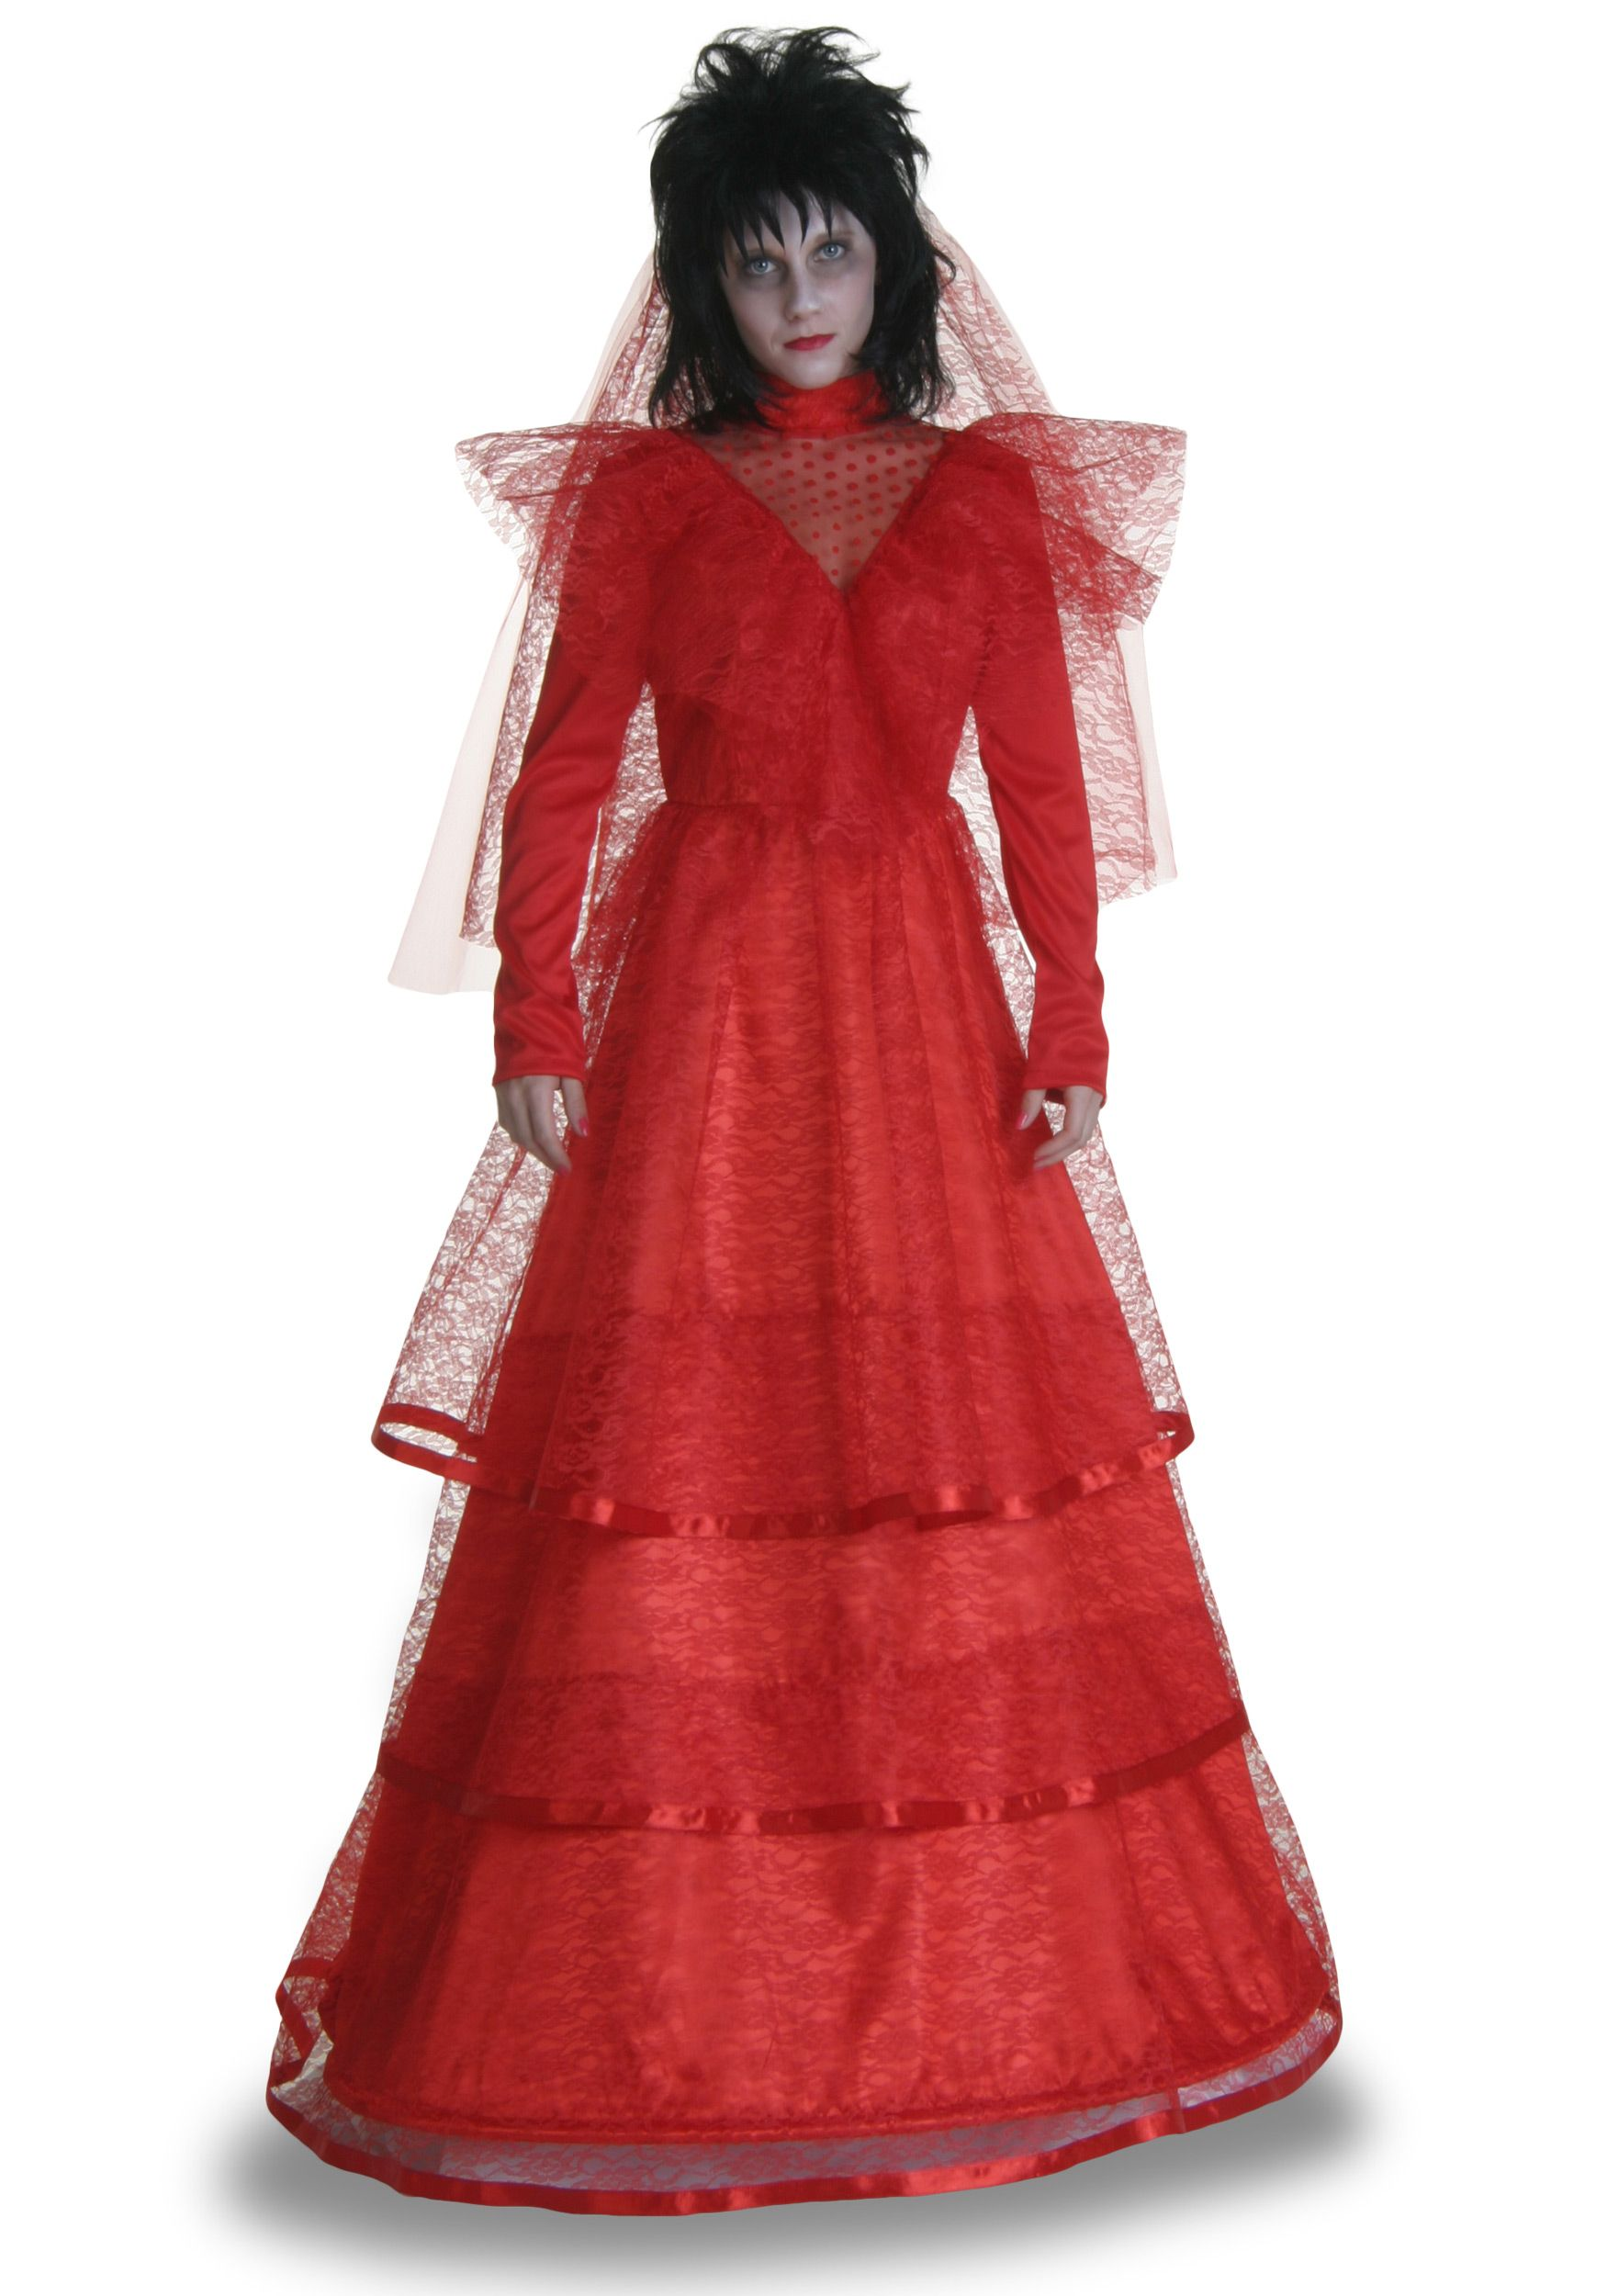 Red Gothic Wedding Dress Costume Red dress costume, Red